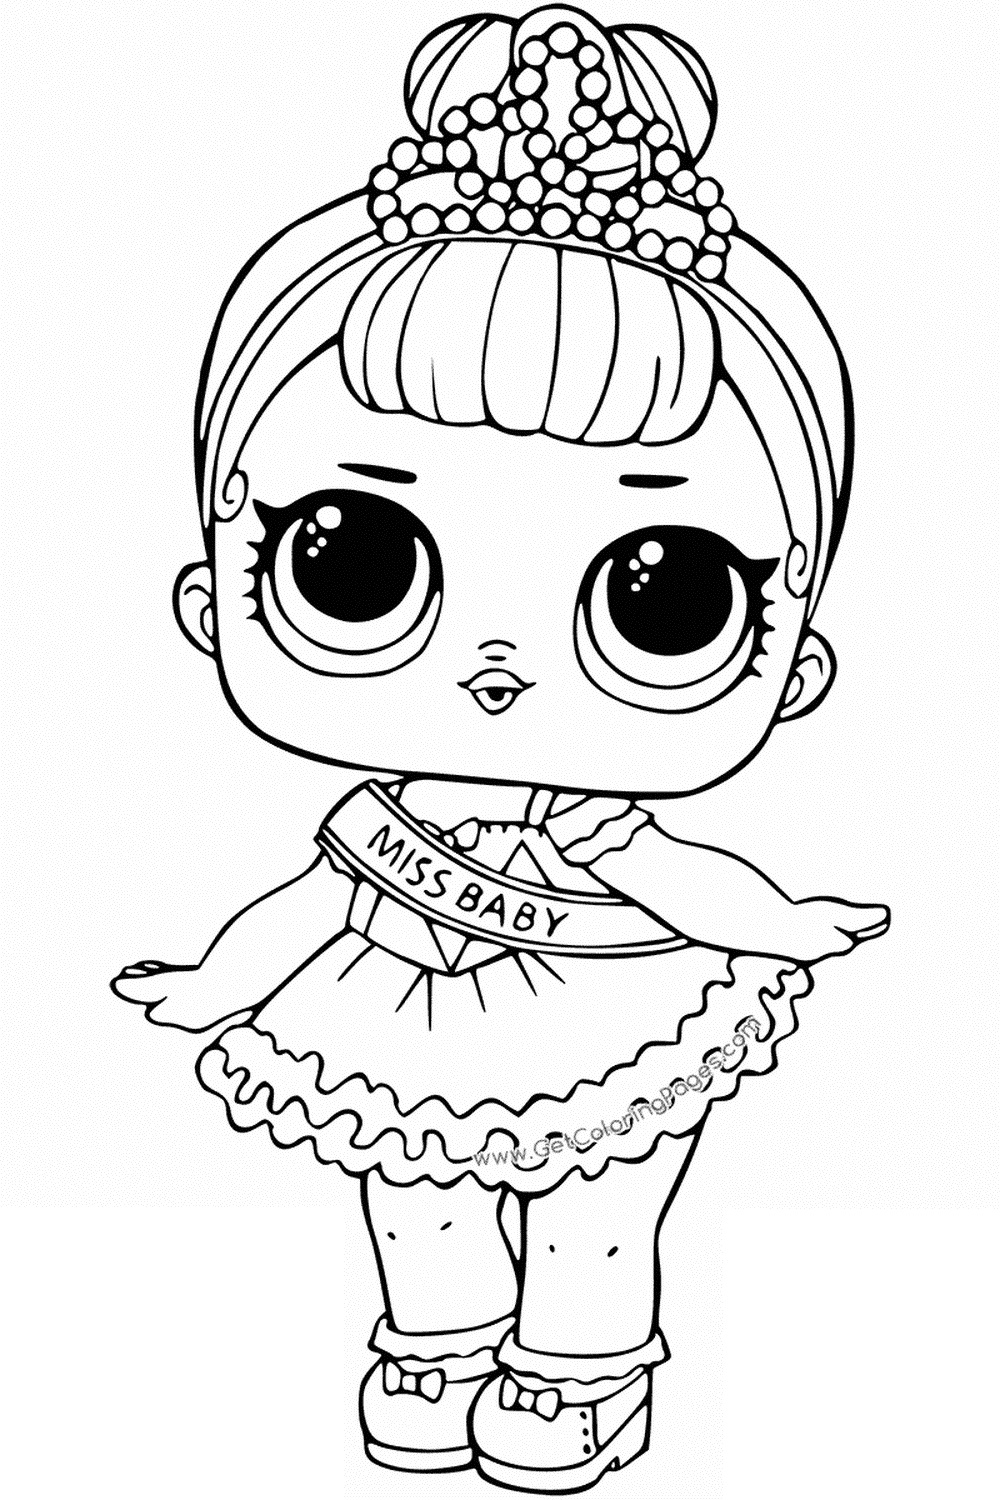 Lol Coloring Pages Lol Surprise Dolls Coloring Pages Print Them For Free All The Series